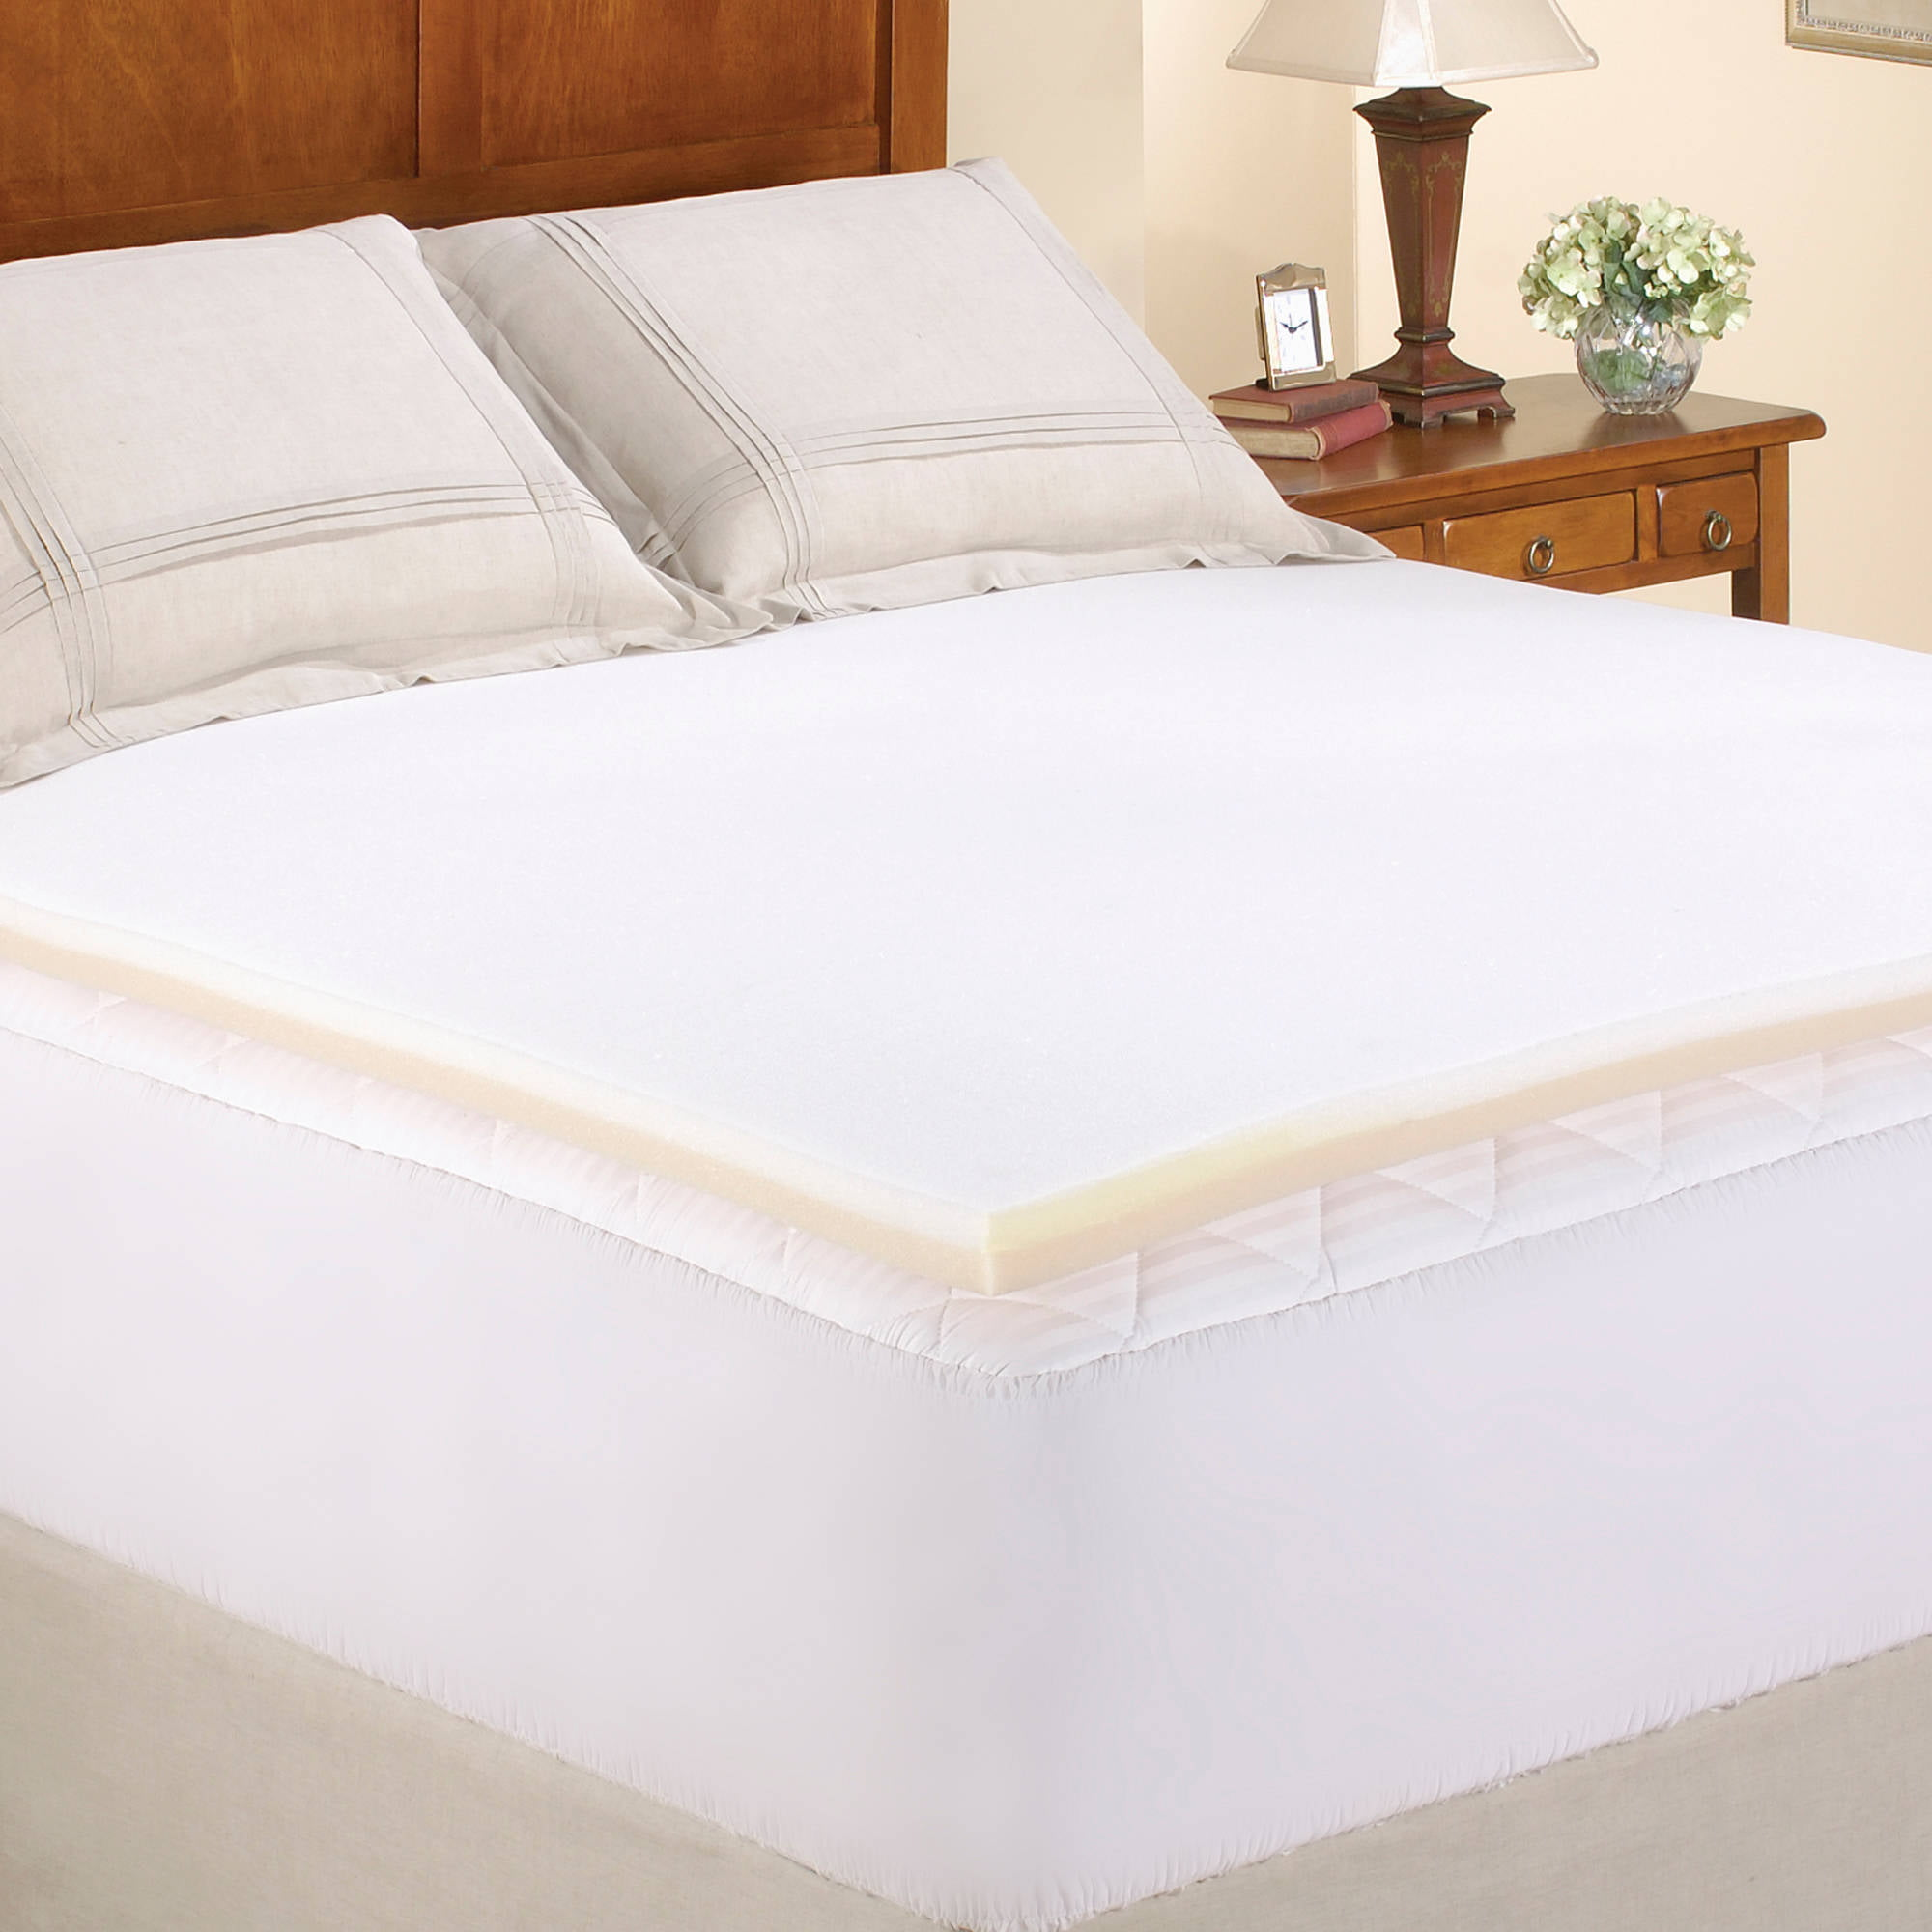 twin bed mattress topper Mainstays 1.375 inch Memory Foam Combo Mattress Topper,Multiple  twin bed mattress topper